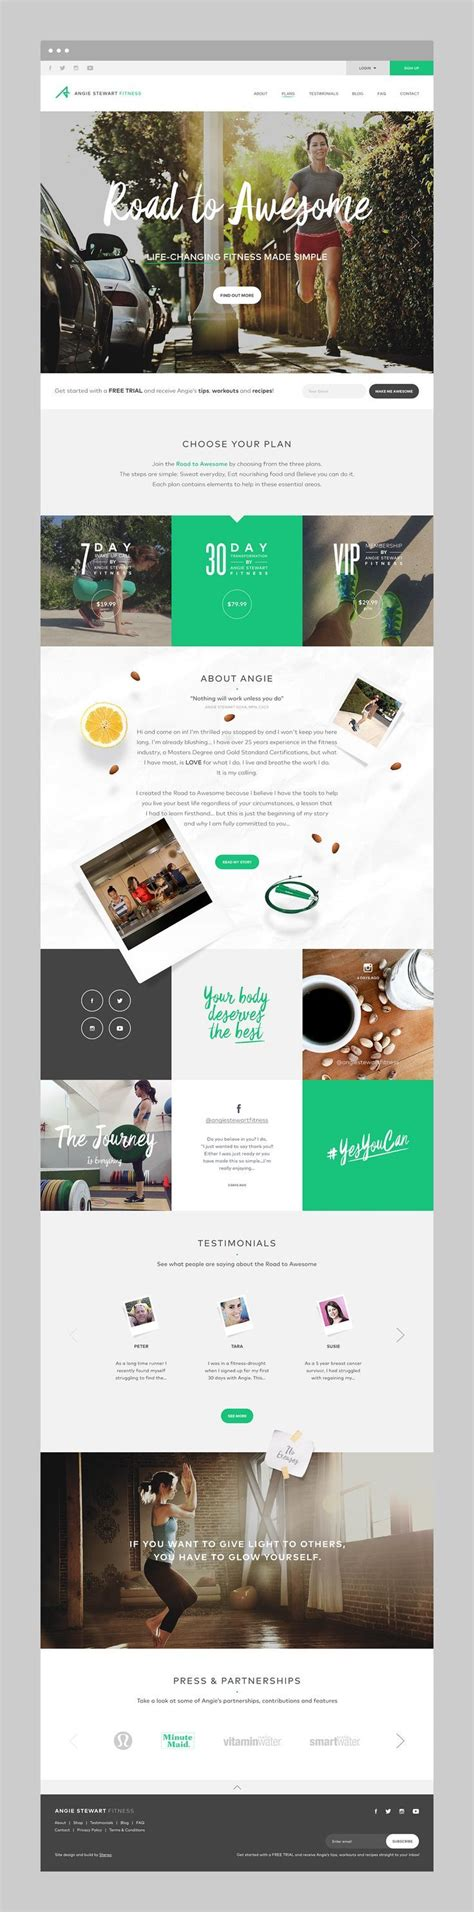 update layout homepage best 25 newsletter design ideas on pinterest newsletter